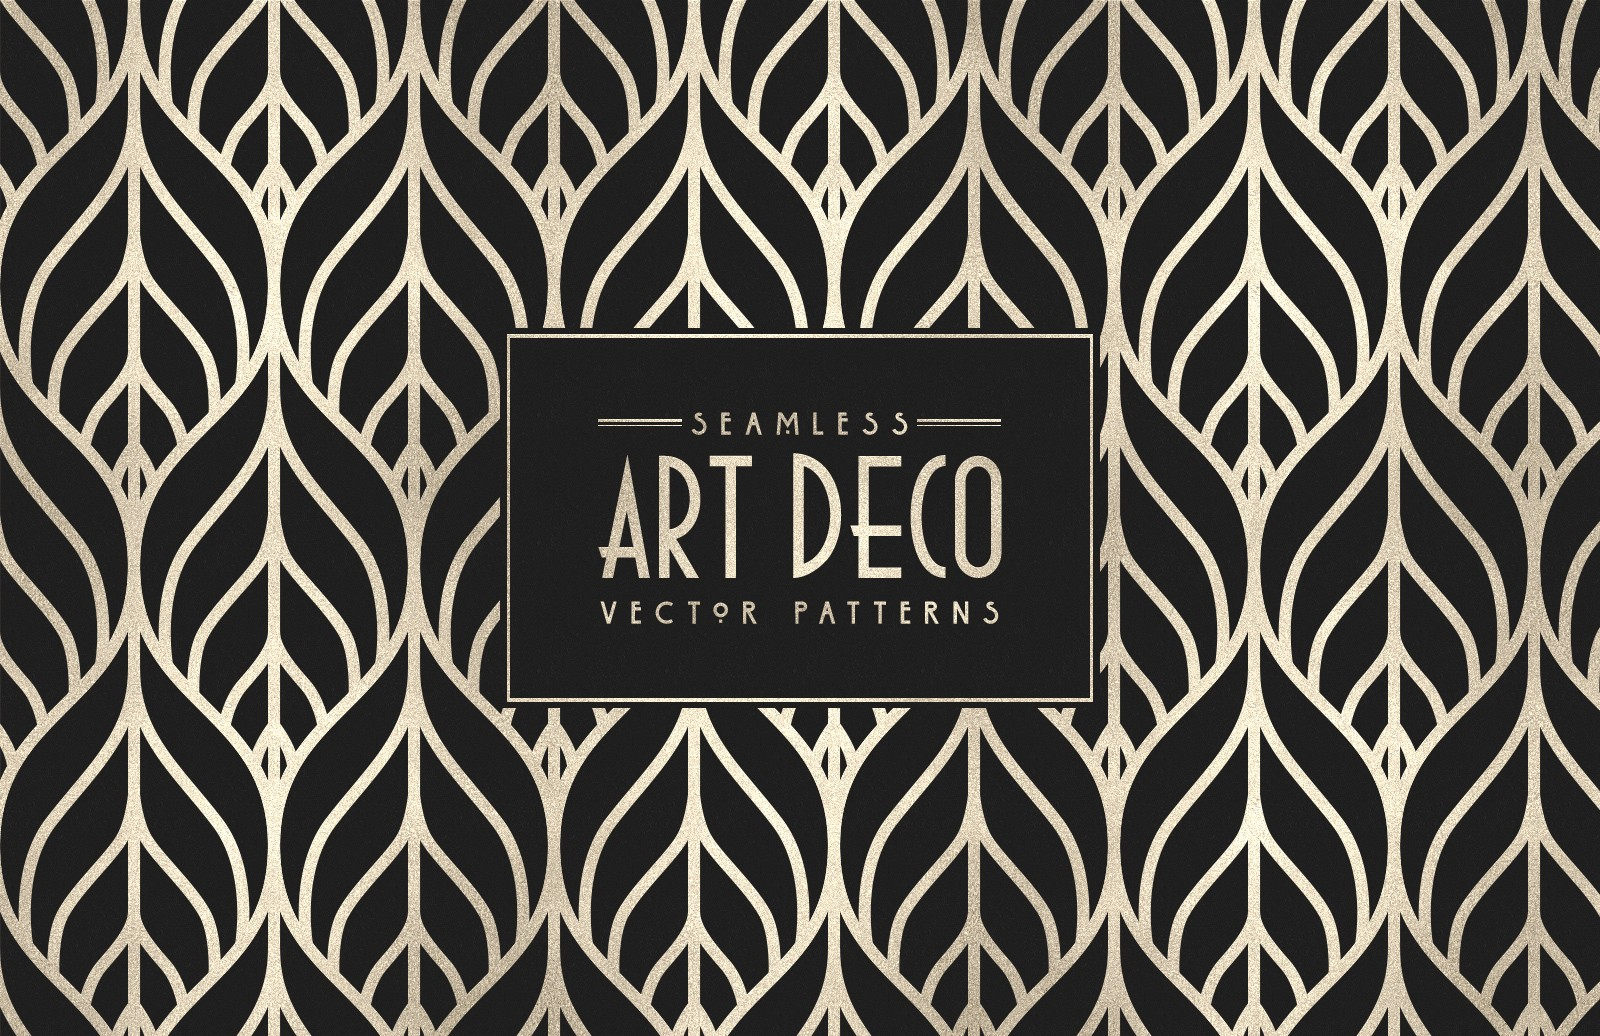 Seamless Art Deco Vector Patterns 2 Preview 1